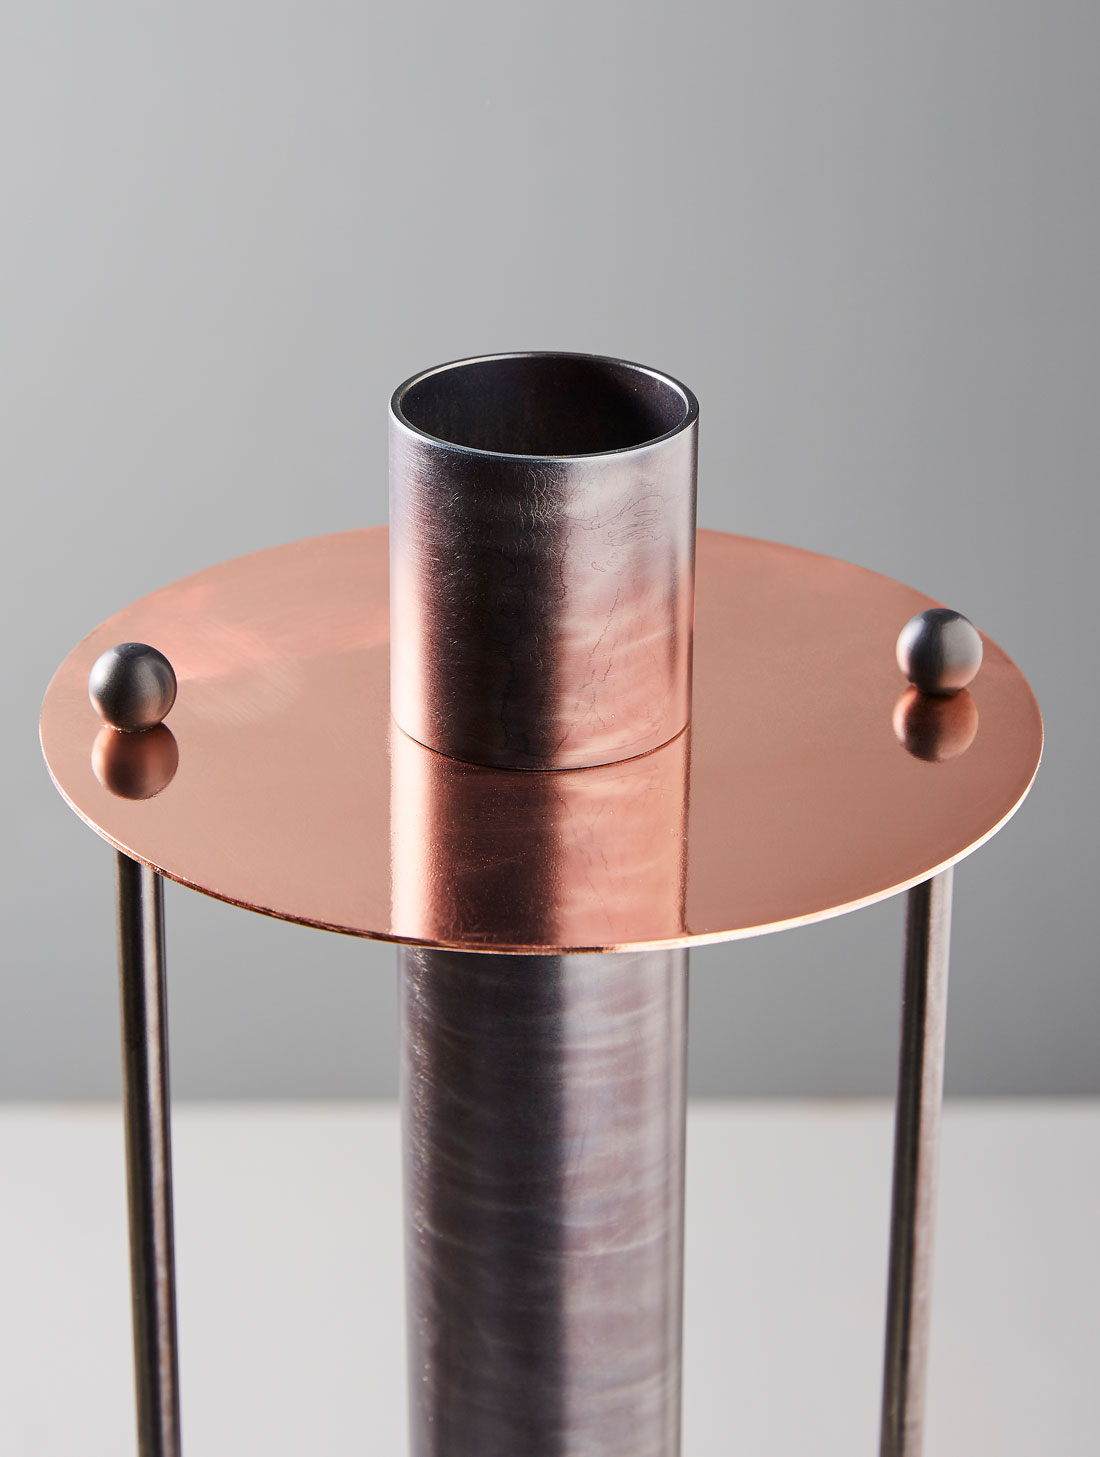 Vase_product design_Federica Biasi_copper